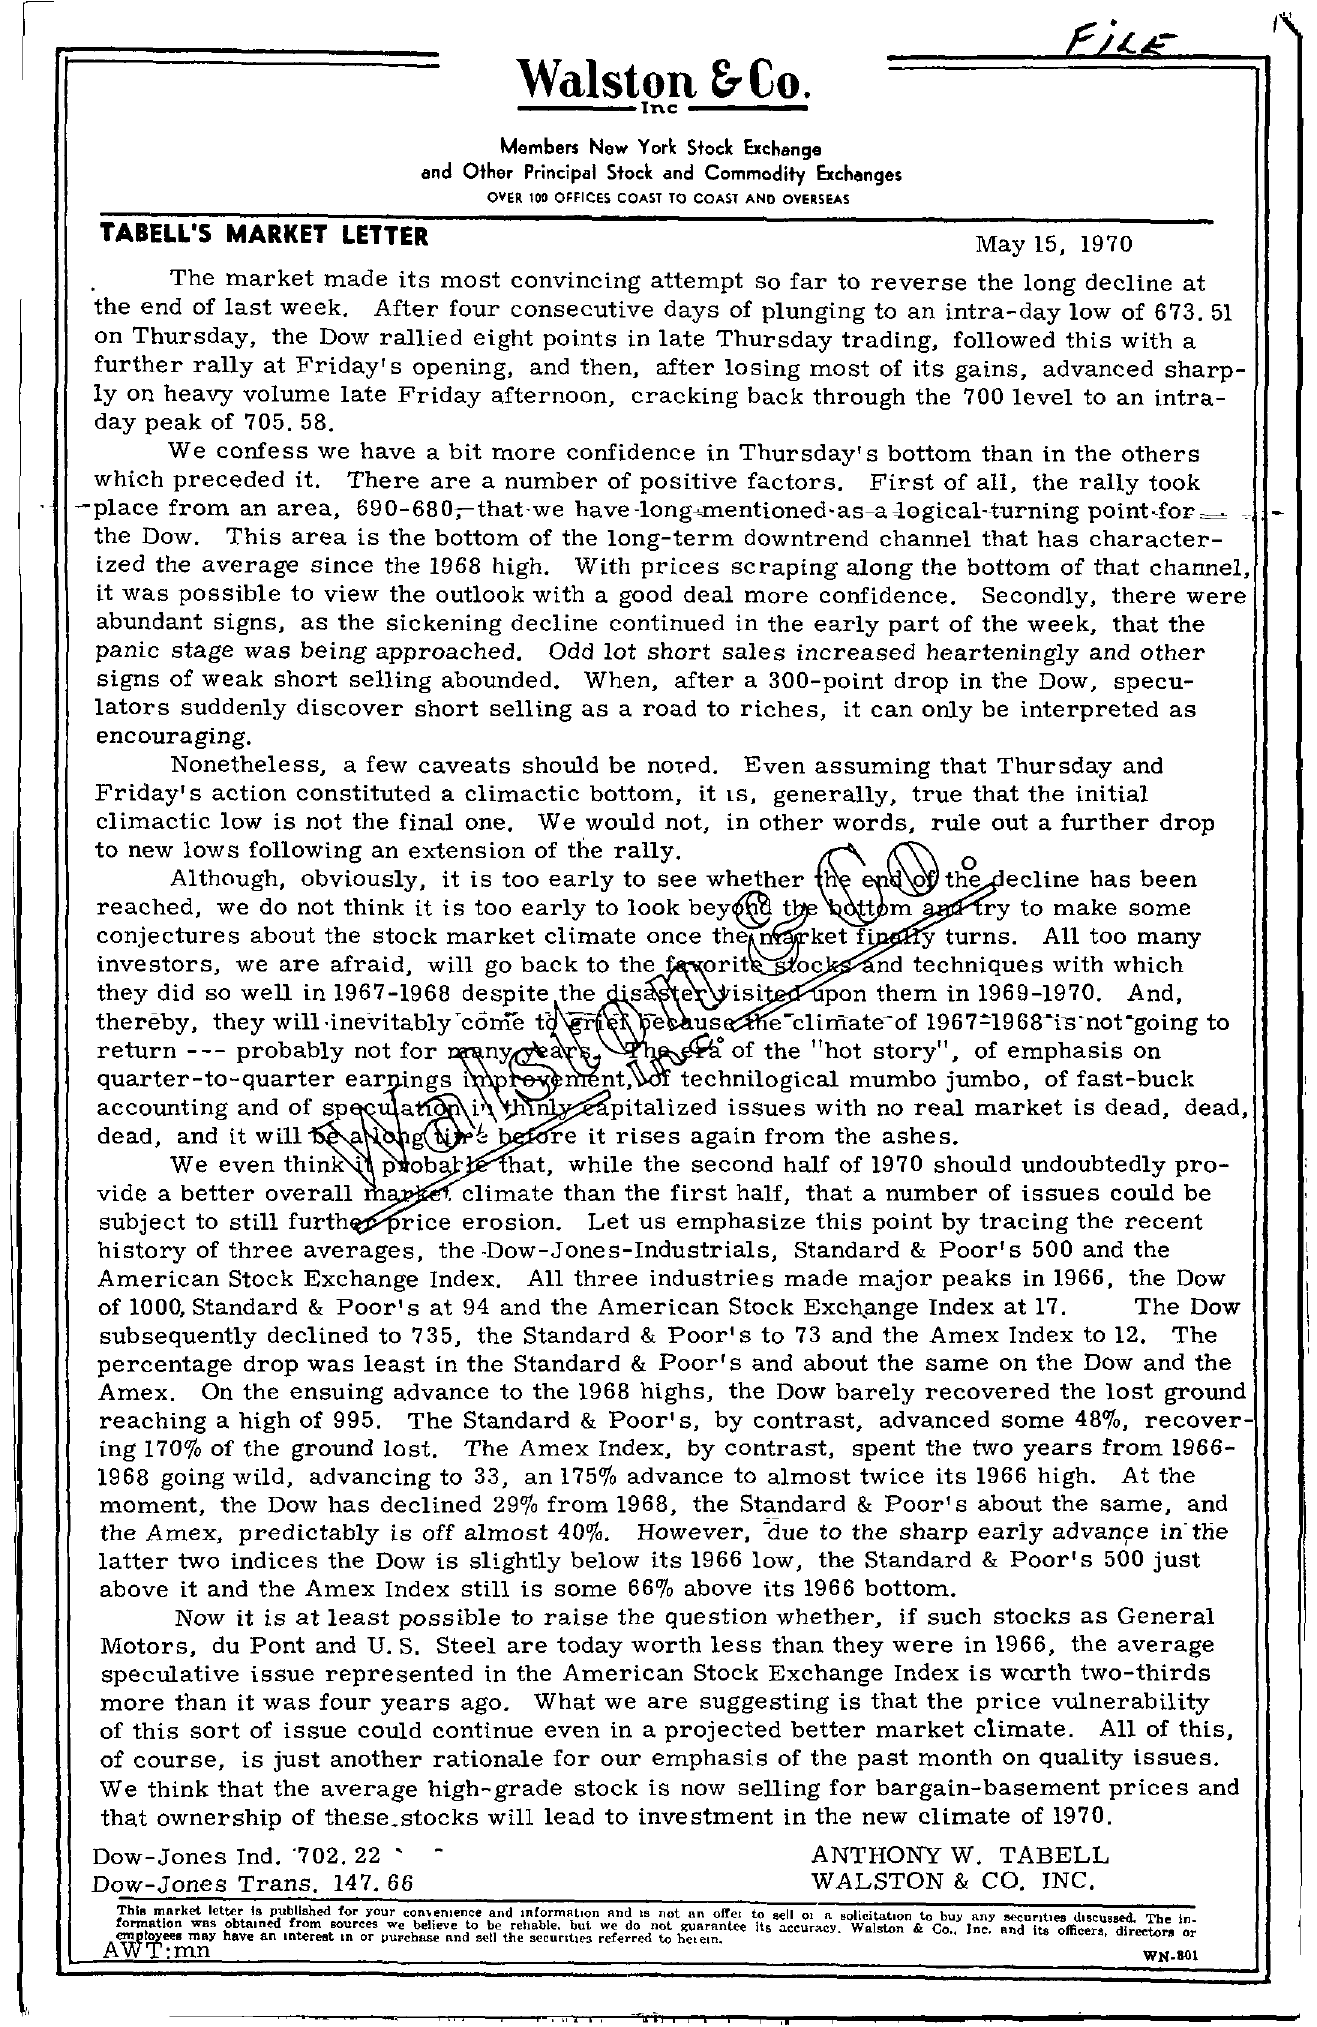 Tabell's Market Letter - May 15, 1970